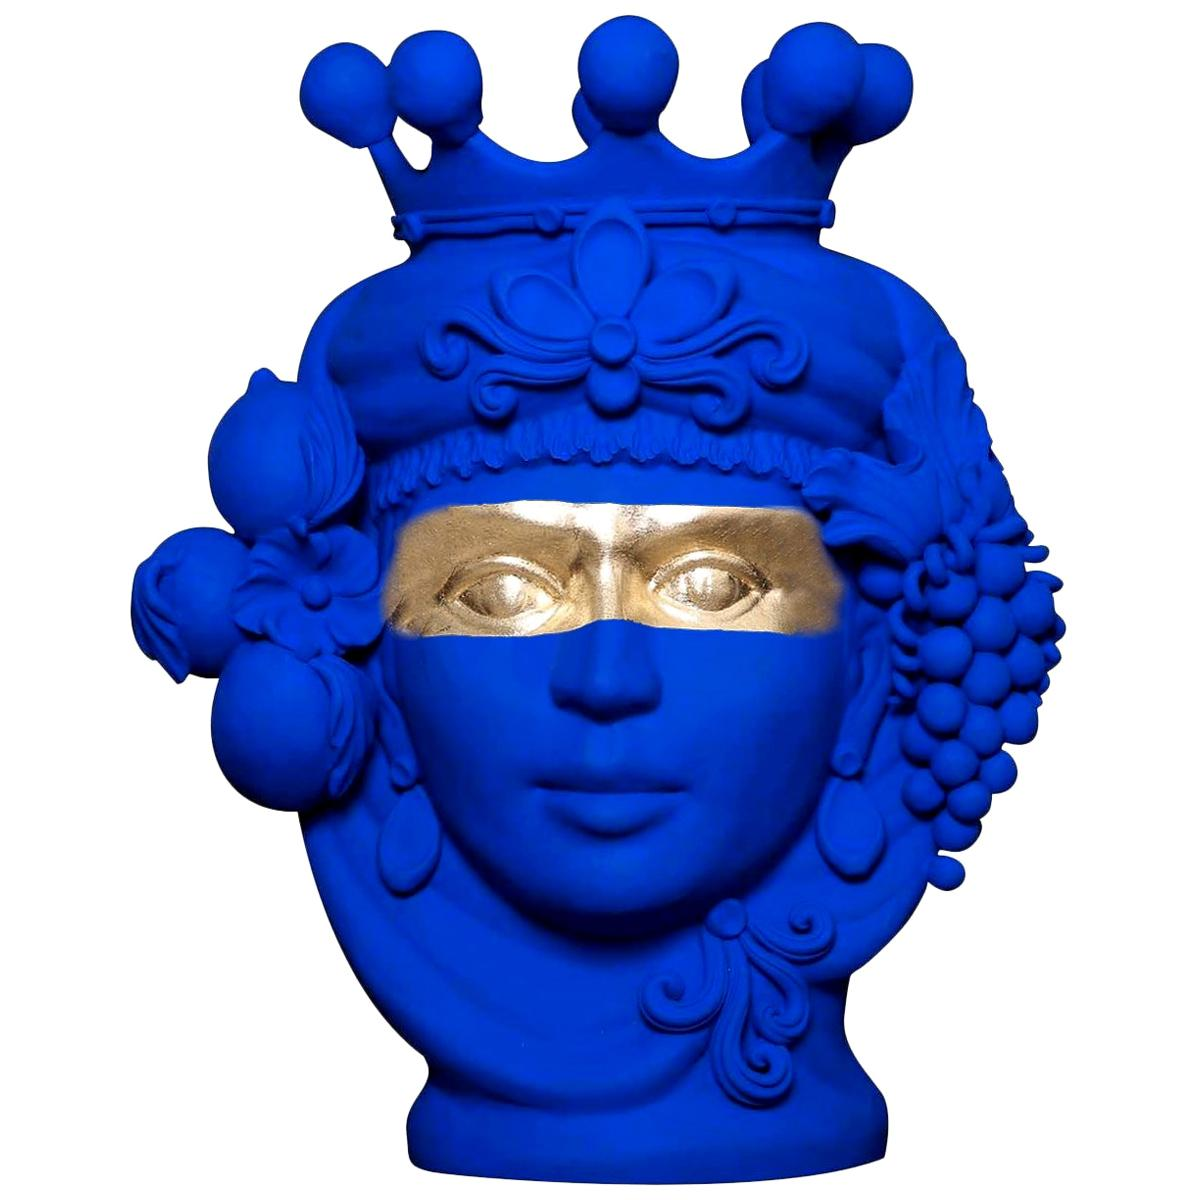 In Stock in Los Angeles, Yves Klein Blue & Gold Terracotta Vase, Stefania Boemi